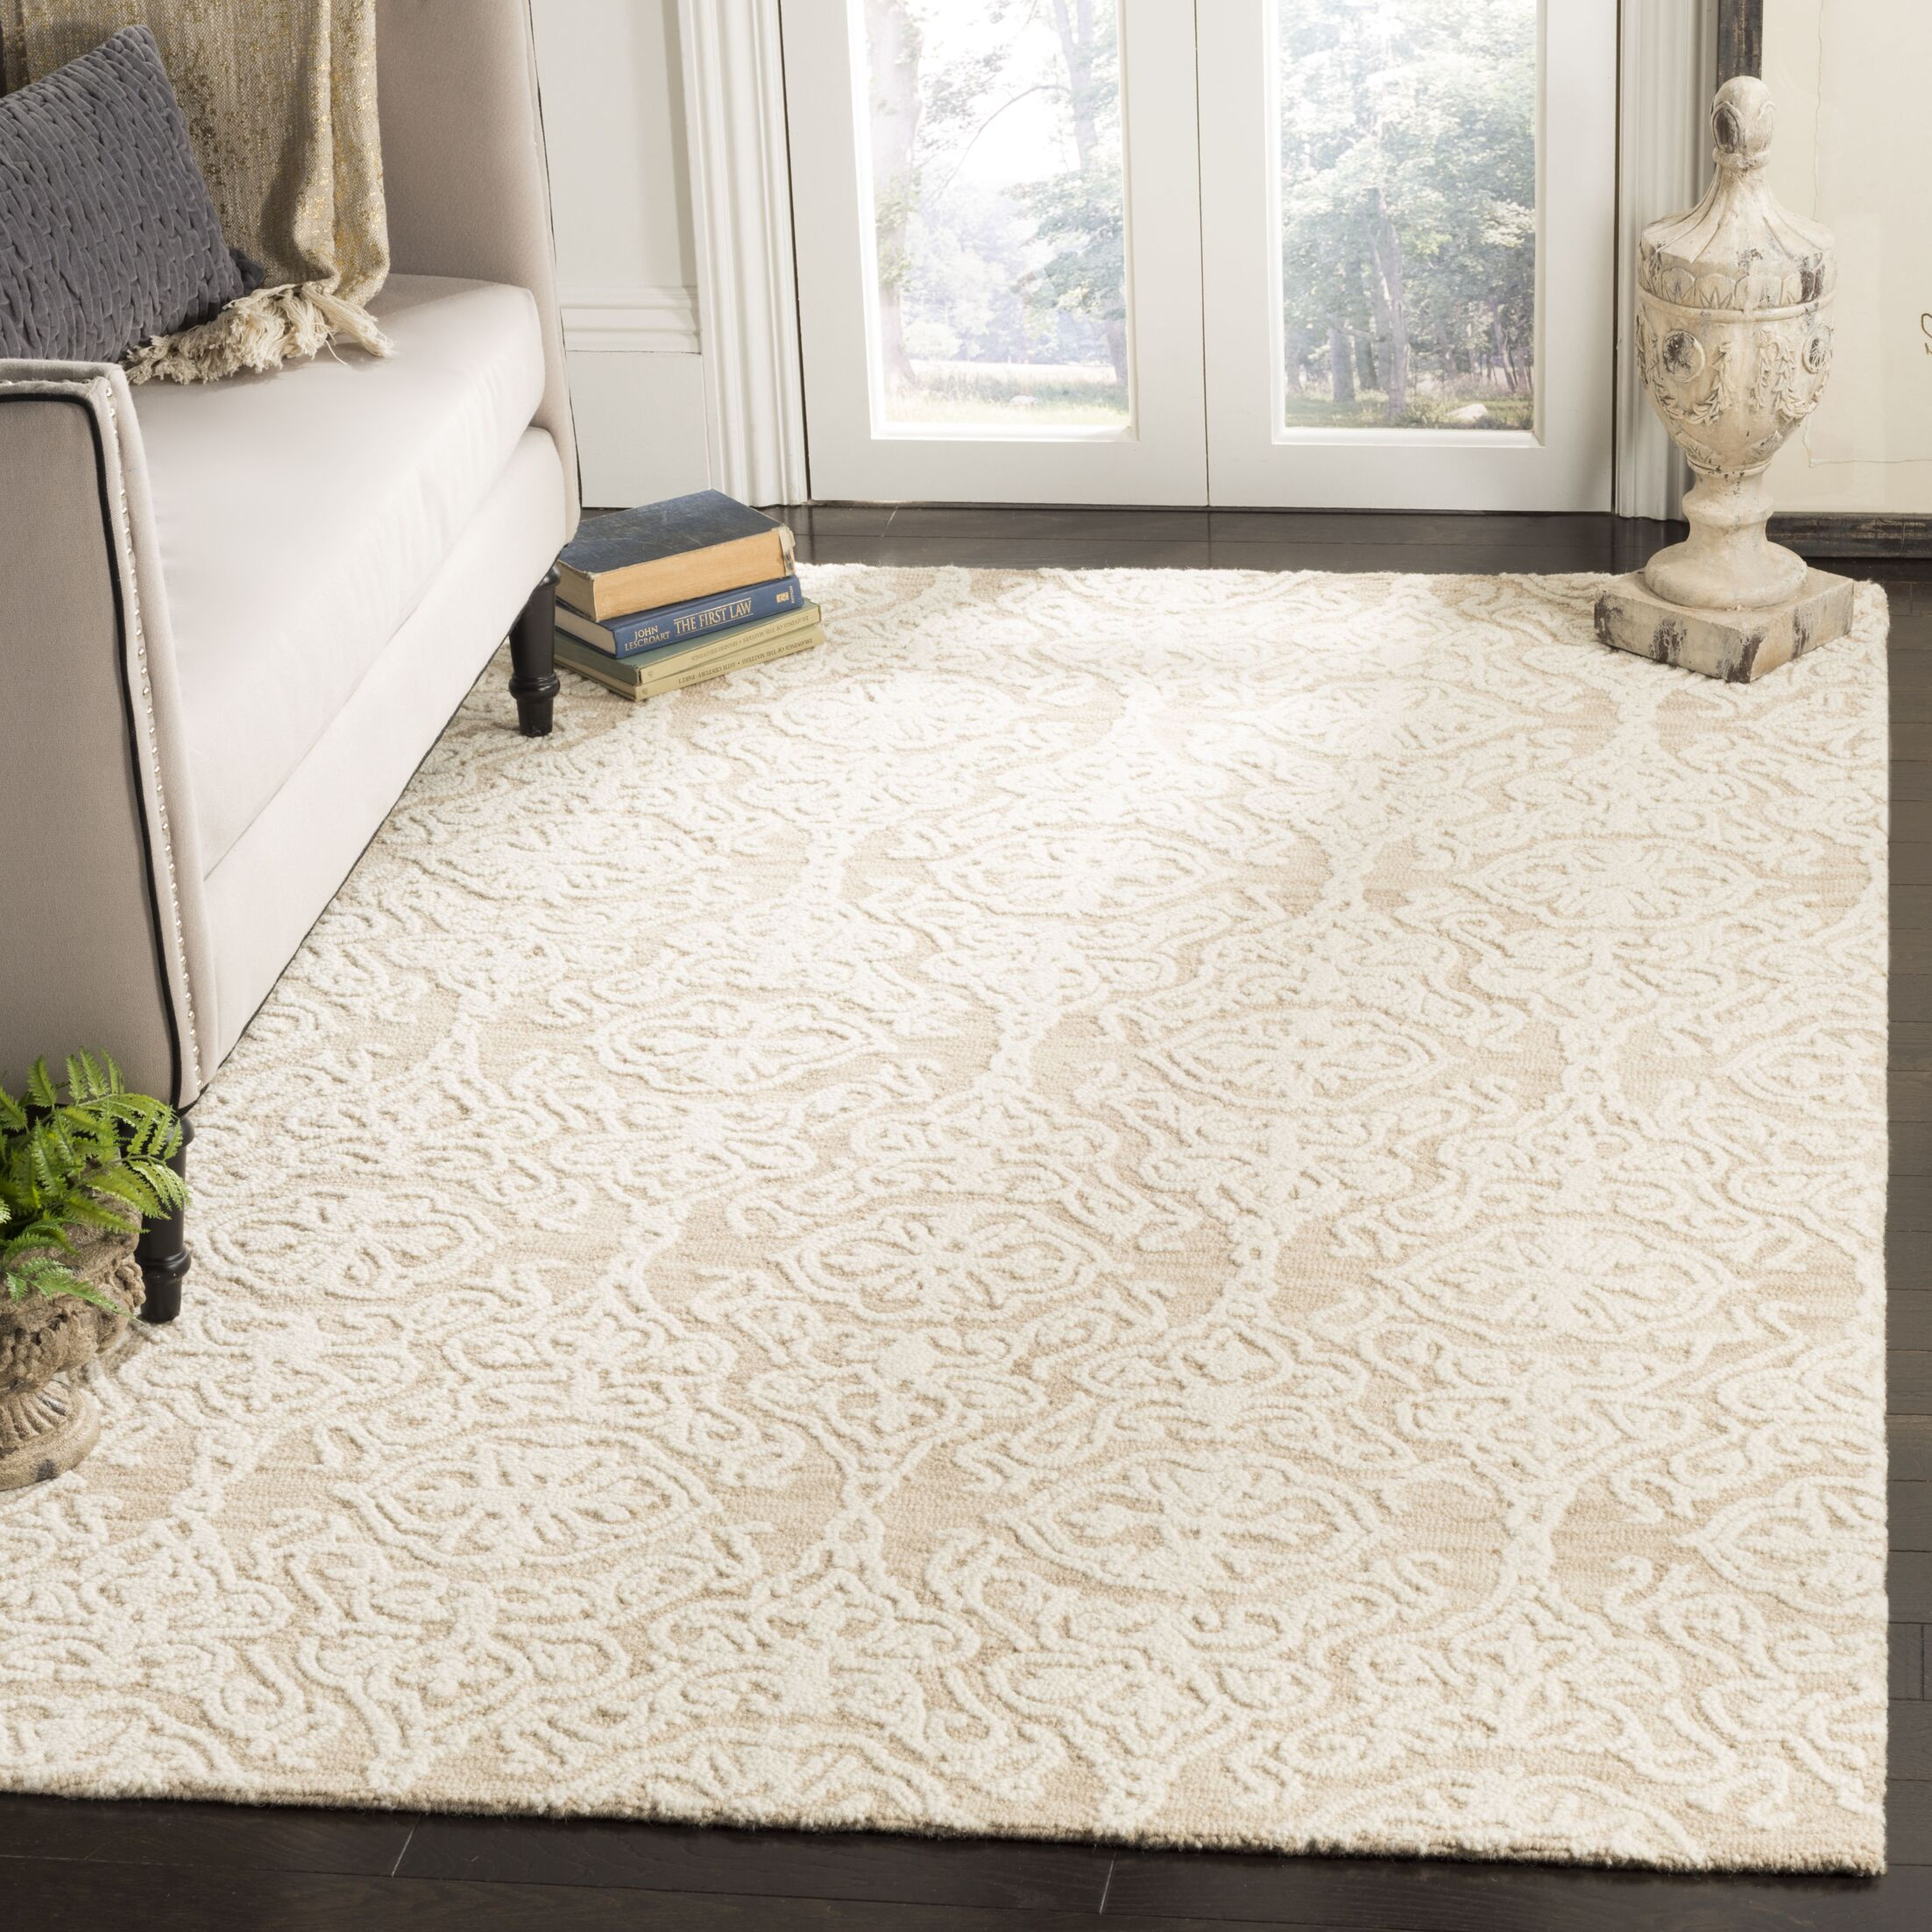 Deidamia Hand-Woven Wool Beige/Ivory Area Rug Rug Size: Square 6'